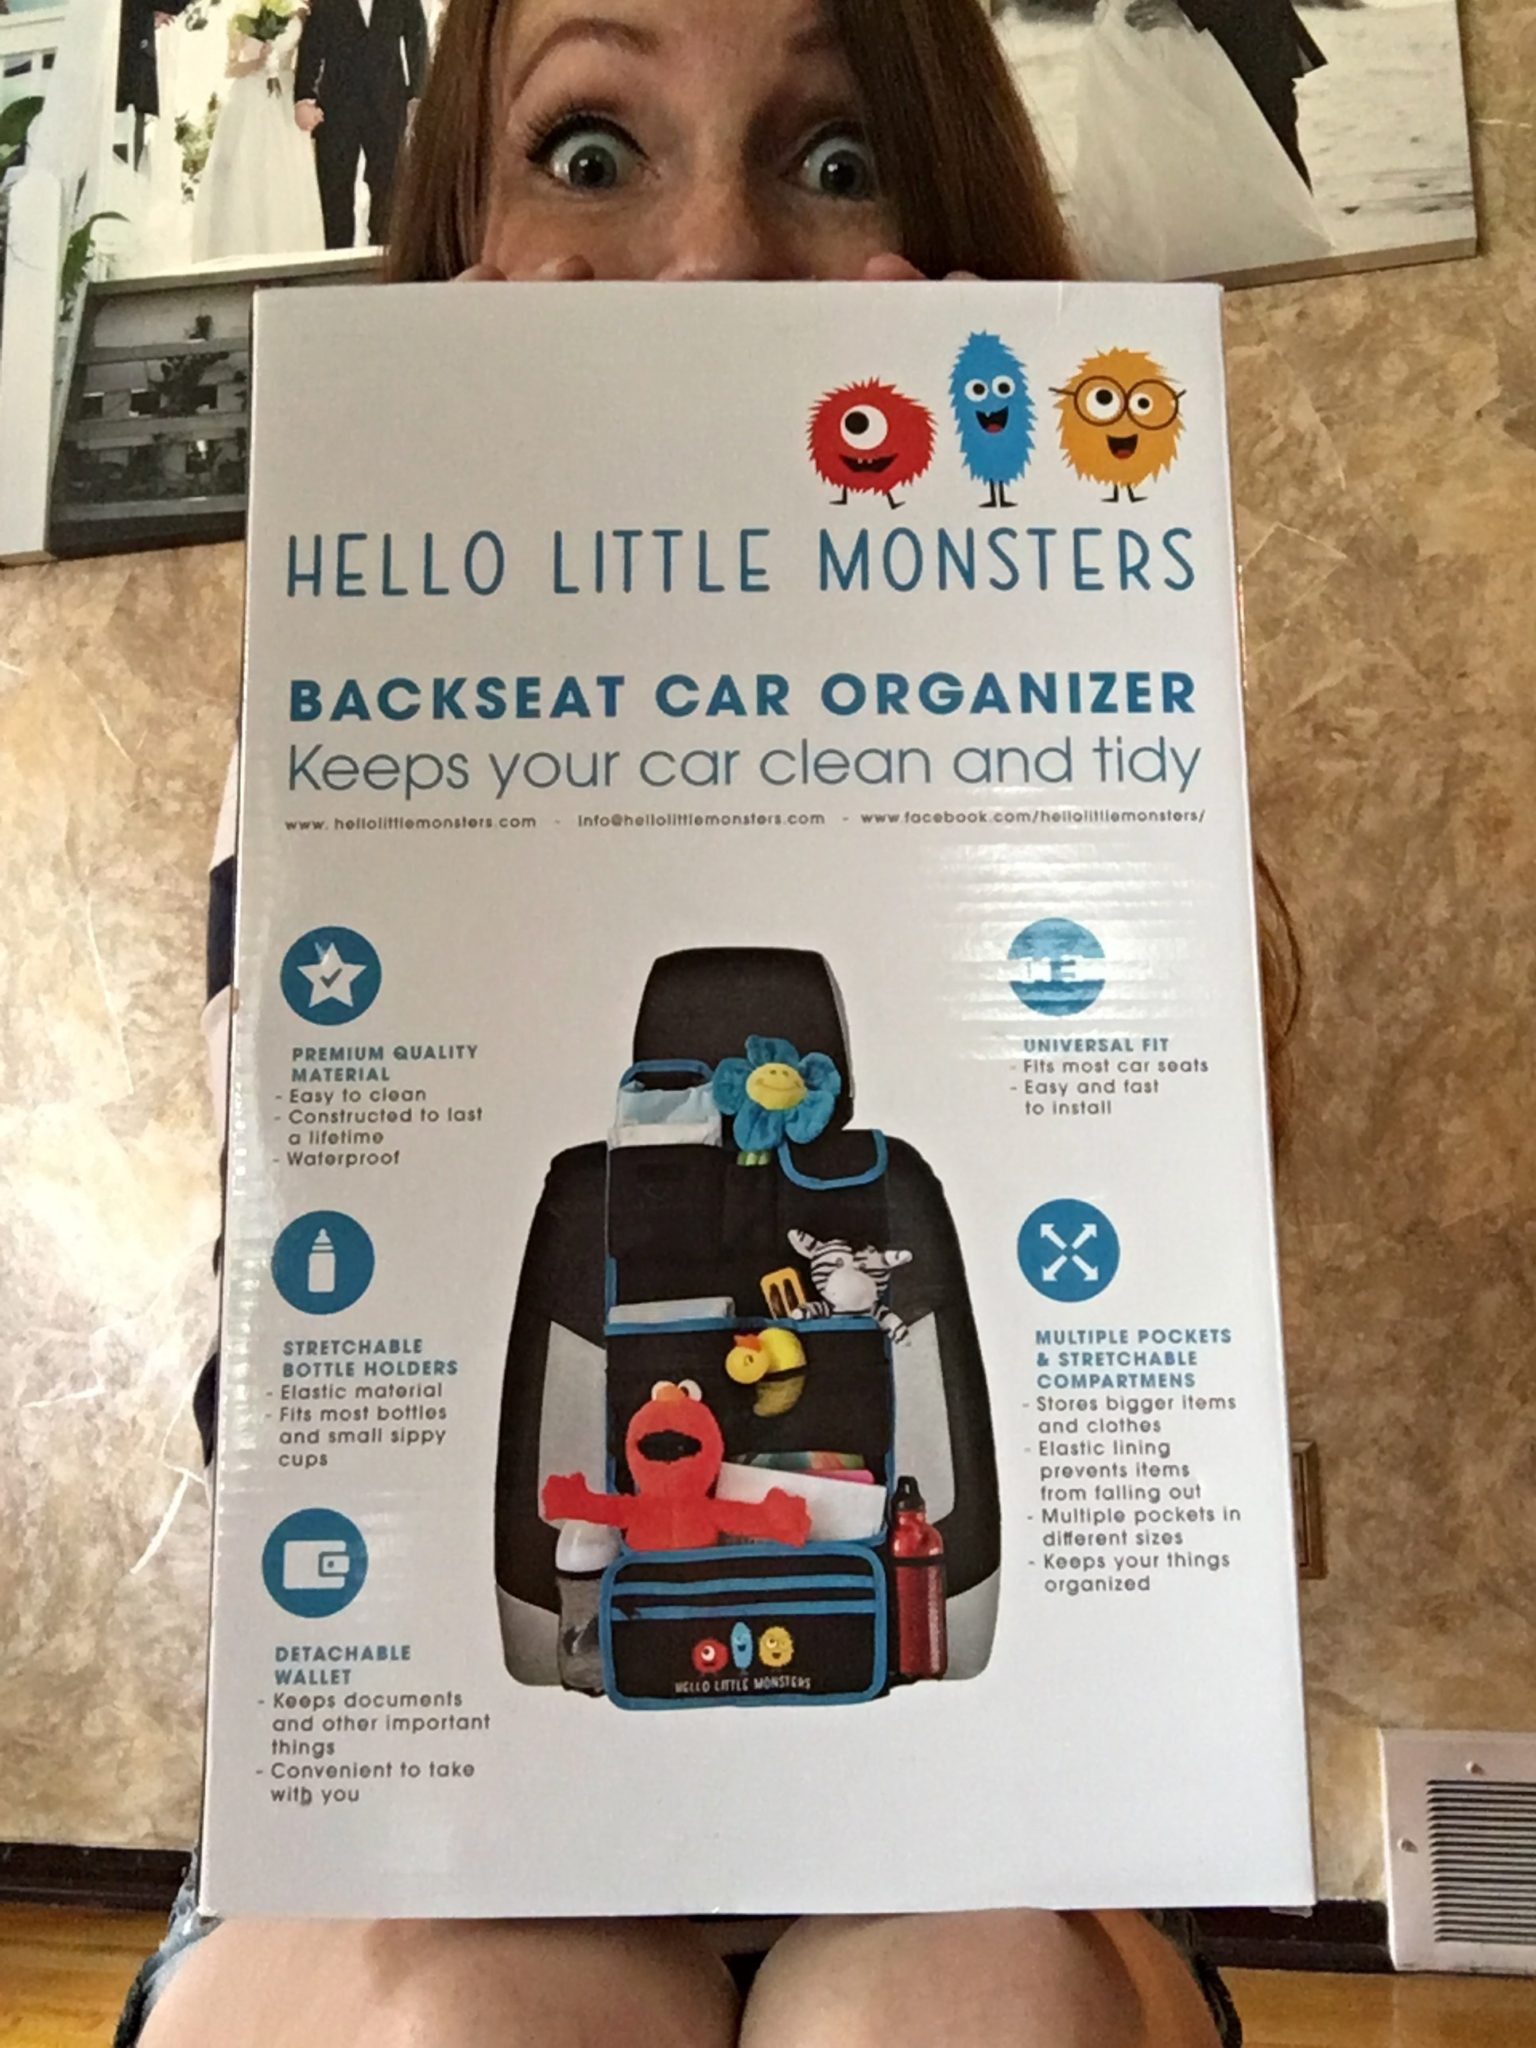 Review & GIVEAWAY! Featuring 'Hello Little Monsters'